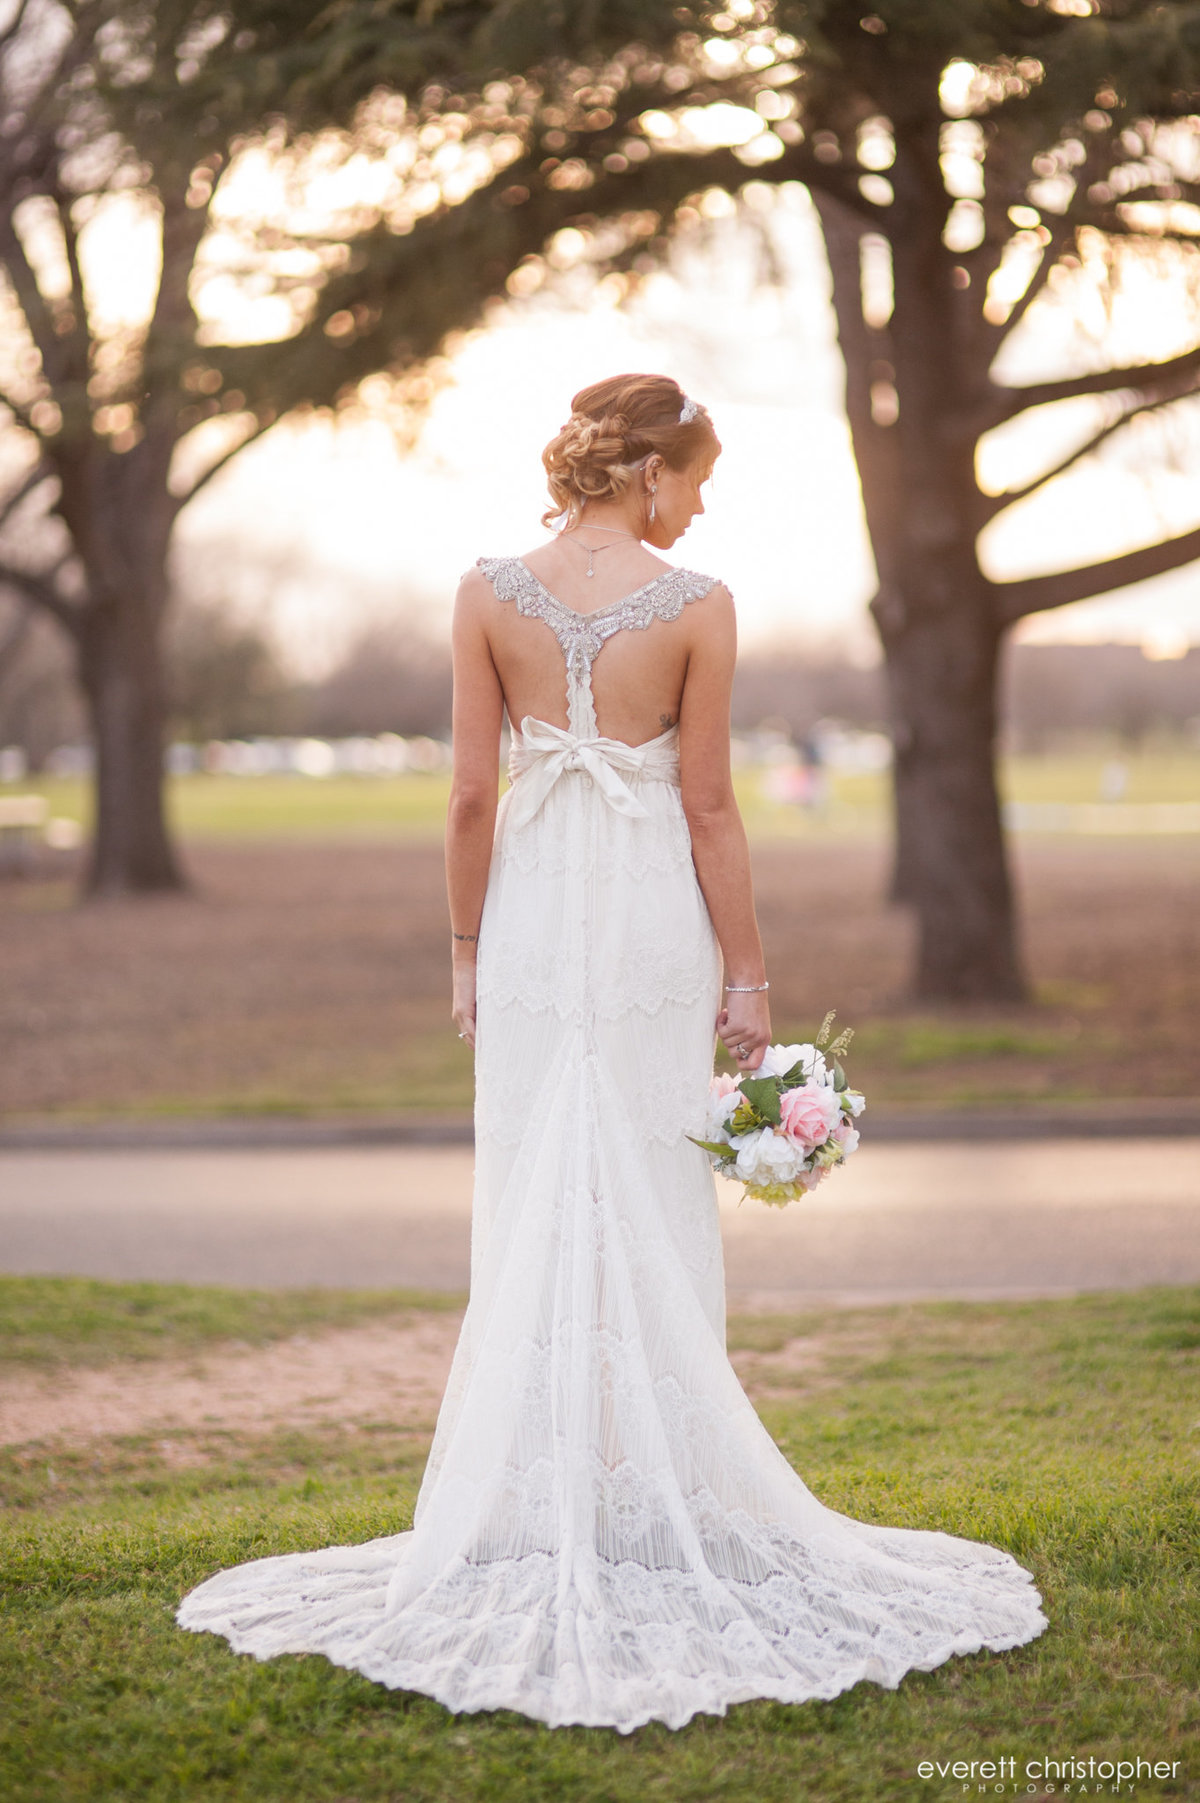 030317-megan-bridals-at-zilker-0007